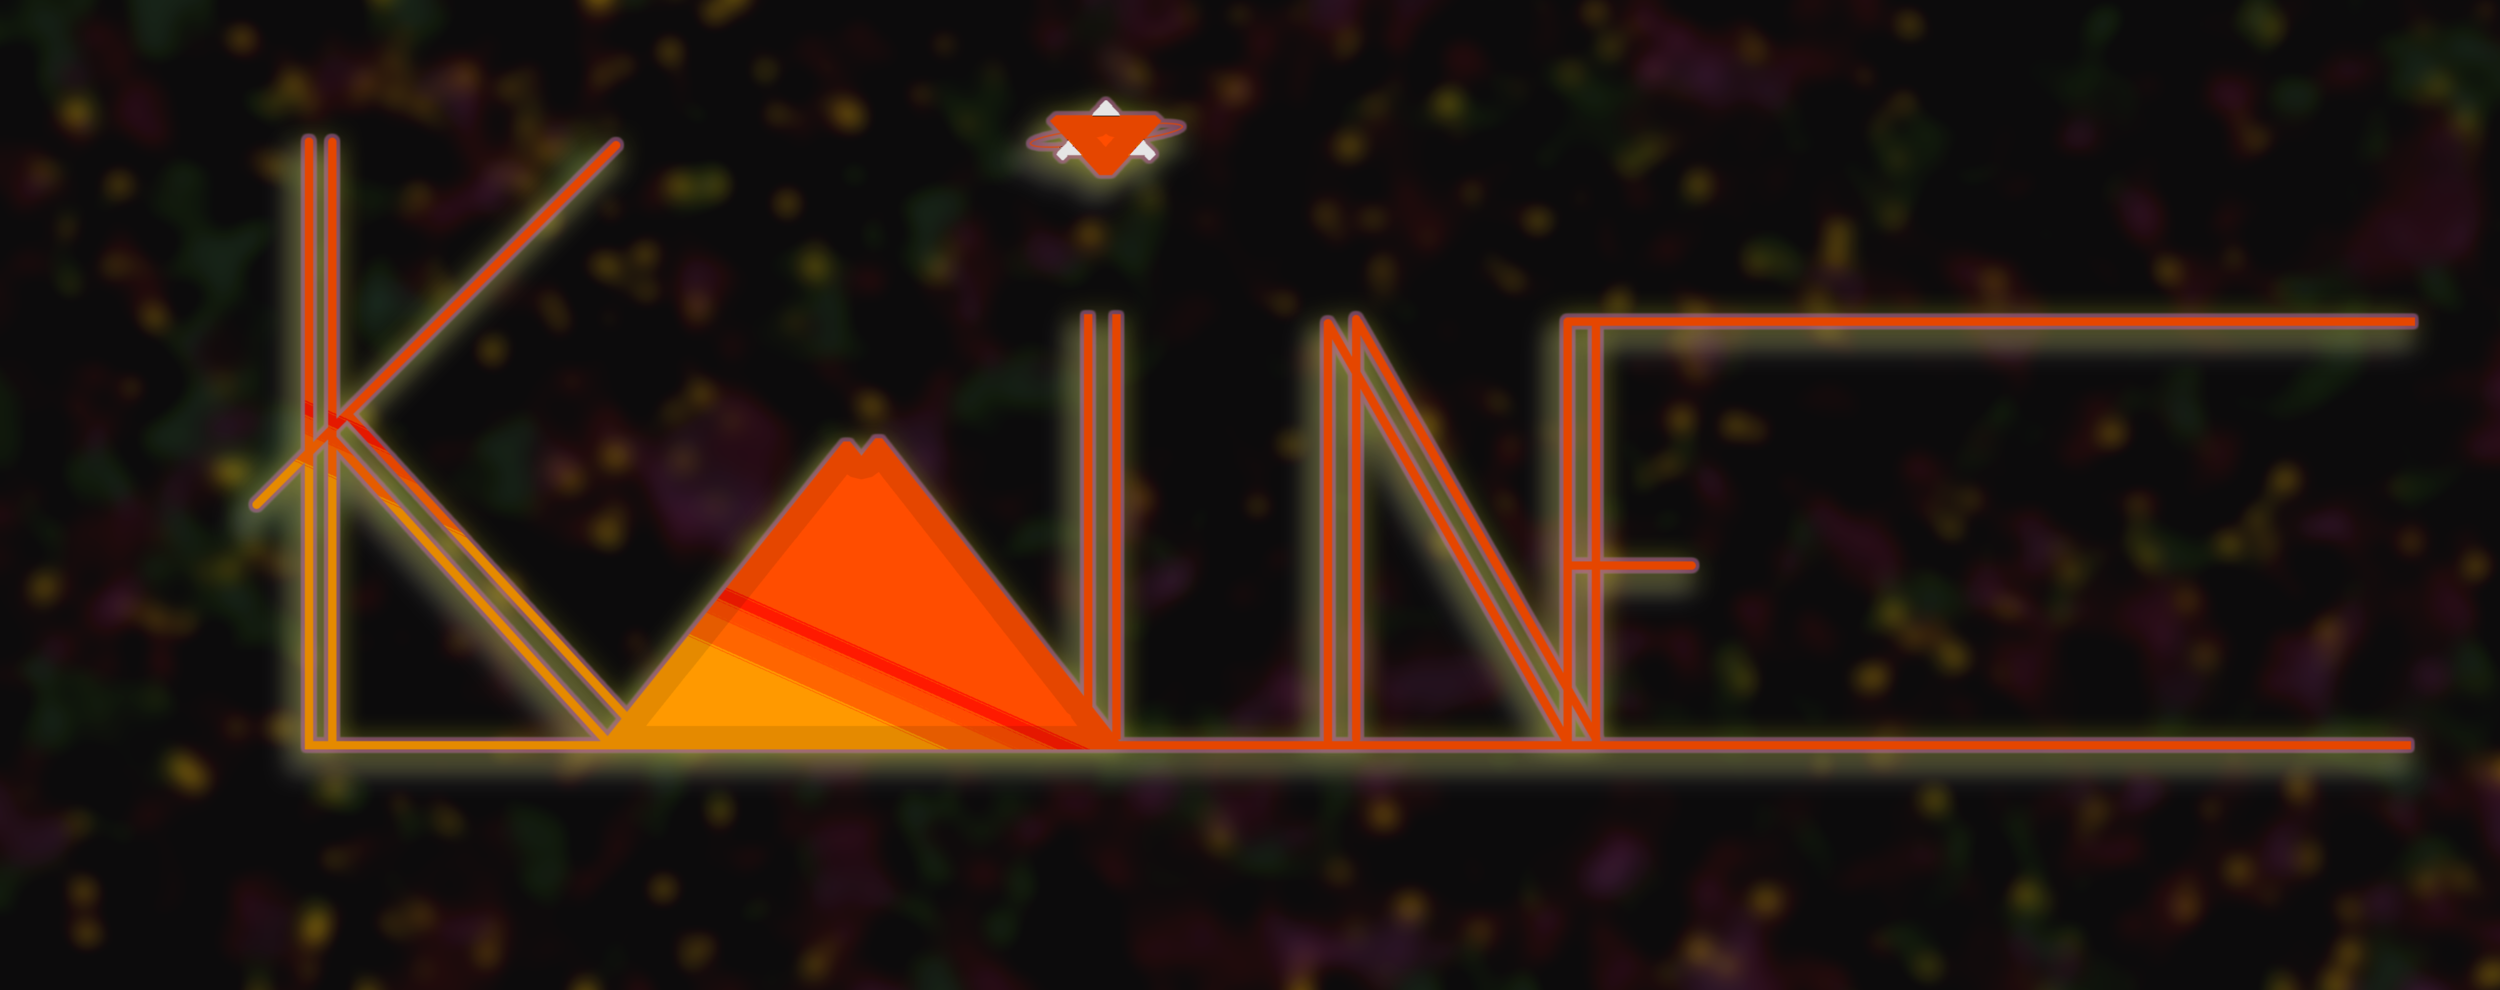 kAINE FIREFLY WITH LOGO BLURRY.png